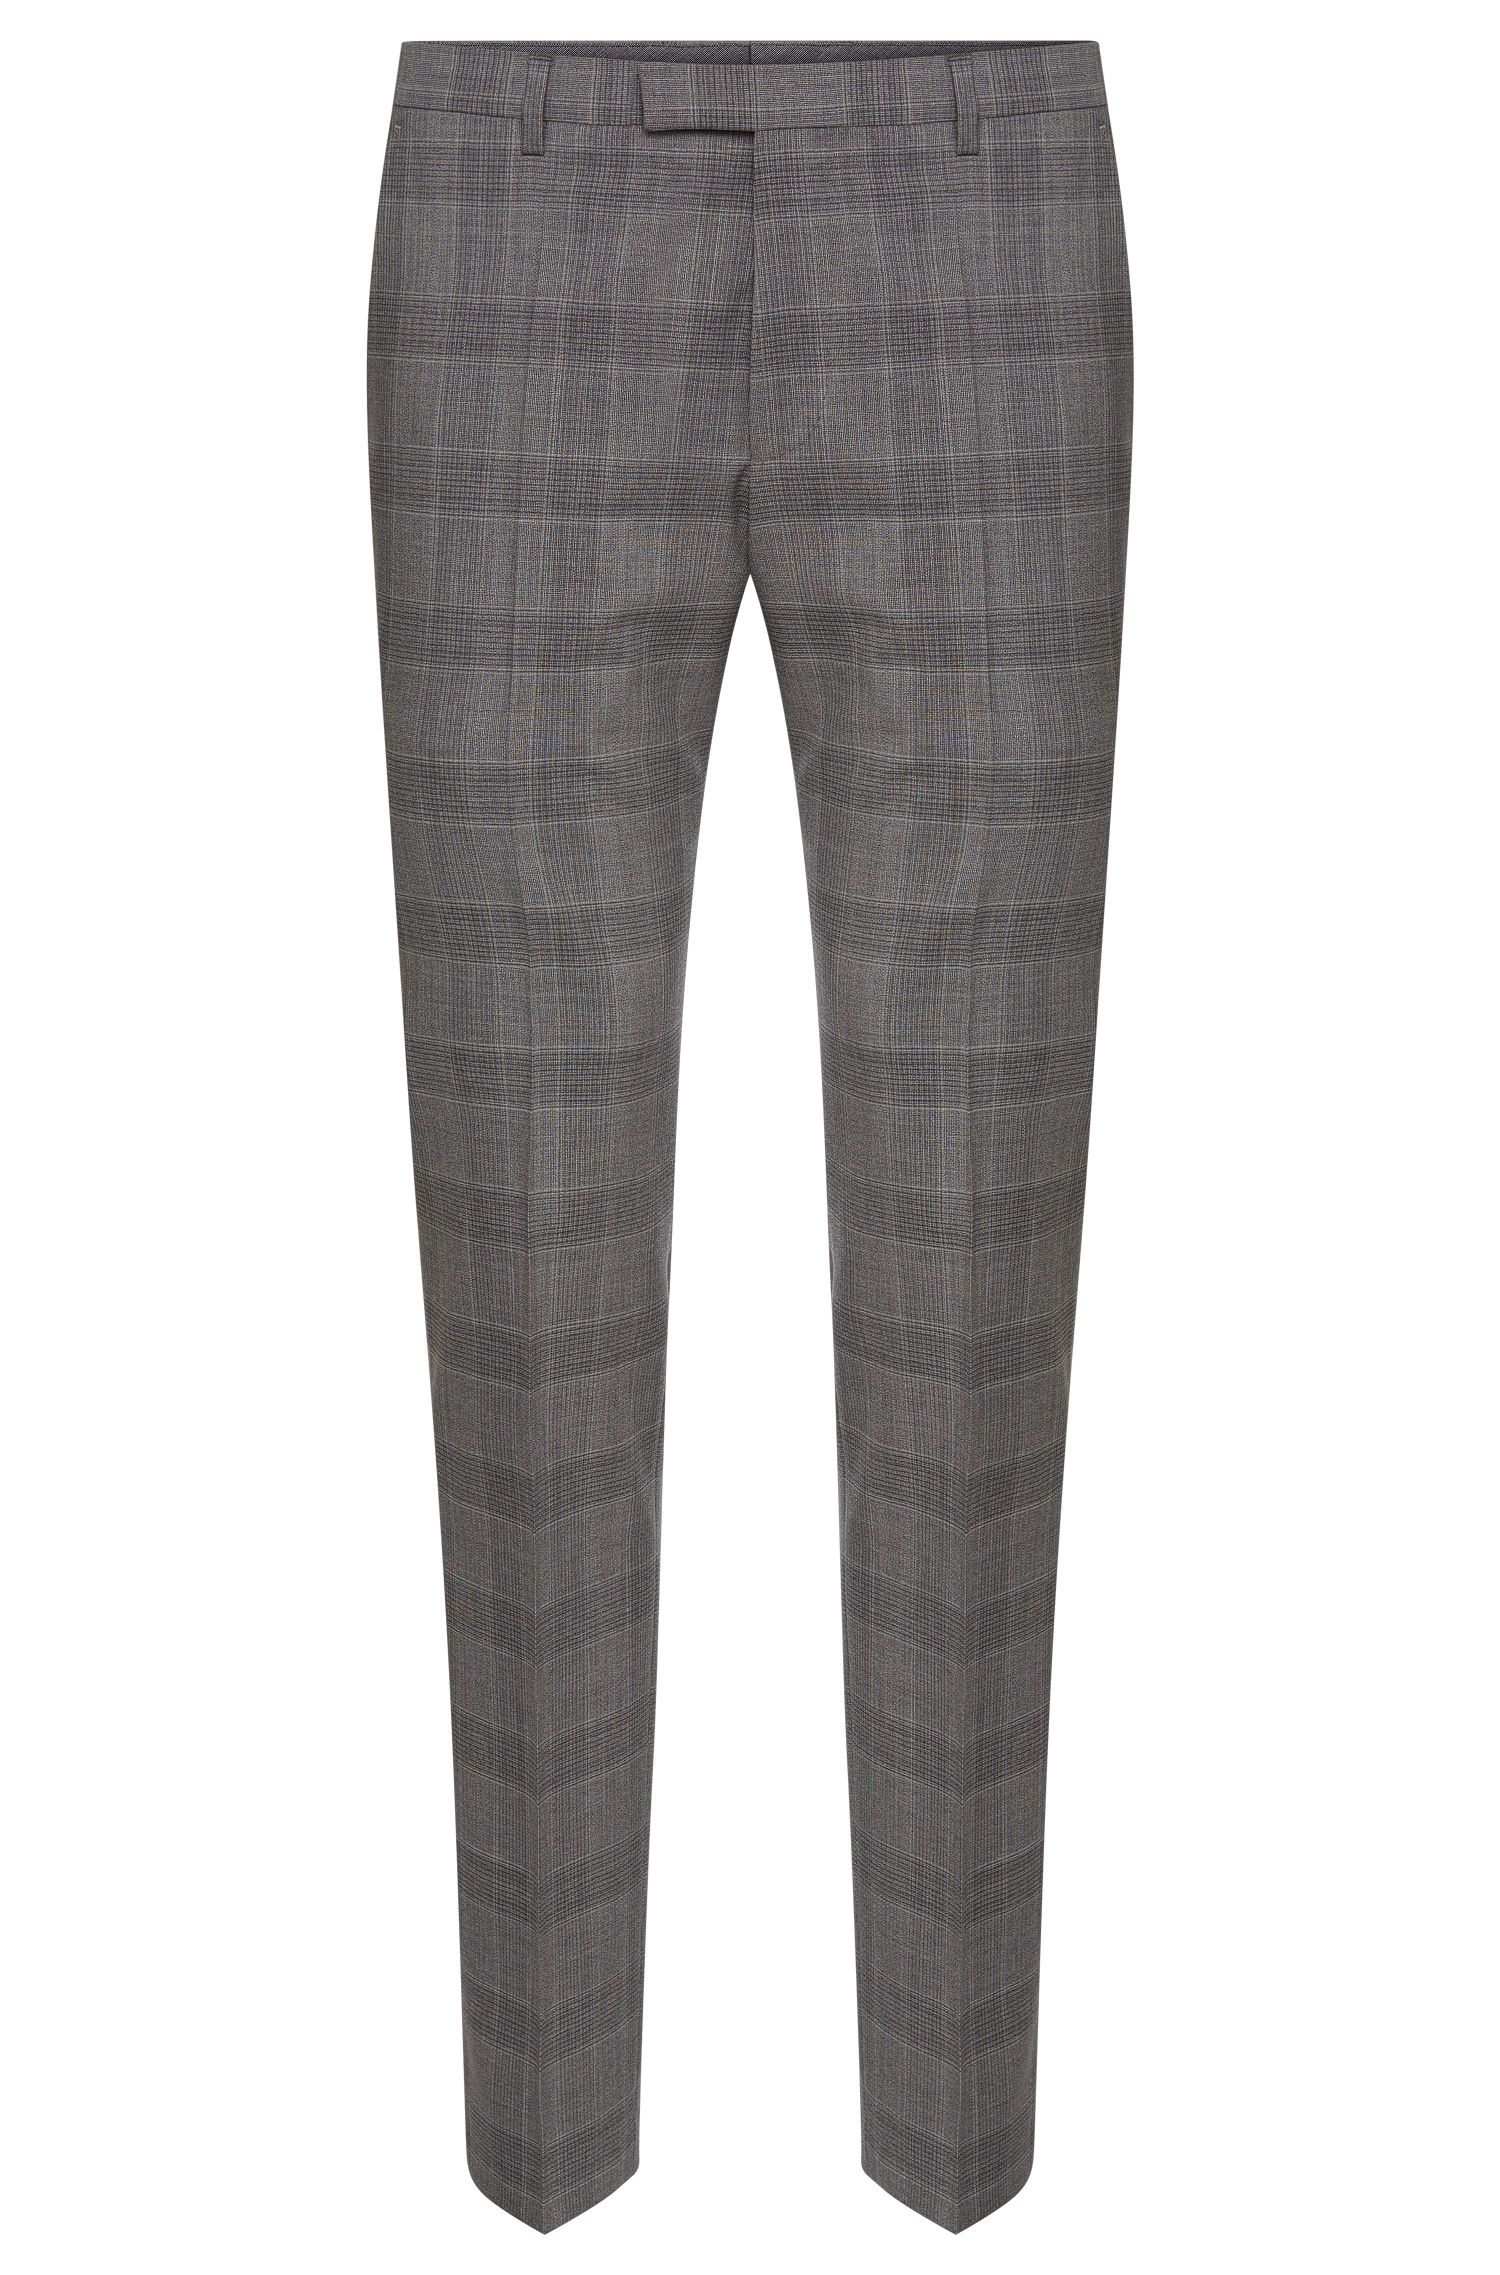 'Leenon' | Regular Fit, Italian Virgin Wool Glen Plaid Dress Pants